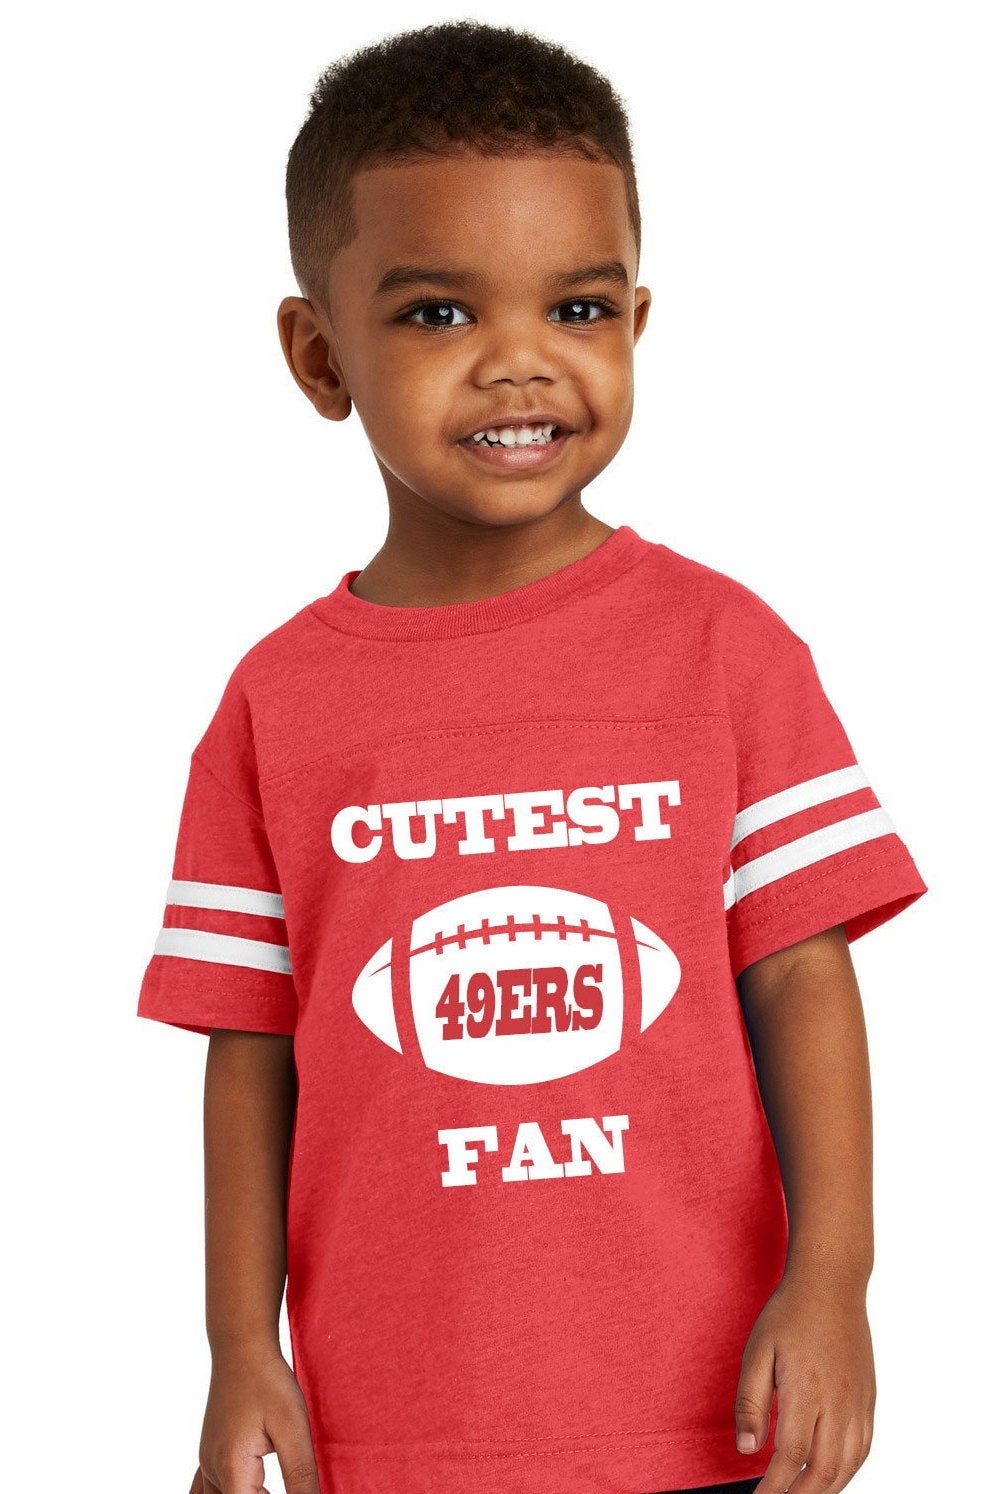 Cutest 49ers Fan Toddler Jersey Style T-shirt Red And White Makes A Perfect Gift Customize With A Name & Number Unisex Tshirt